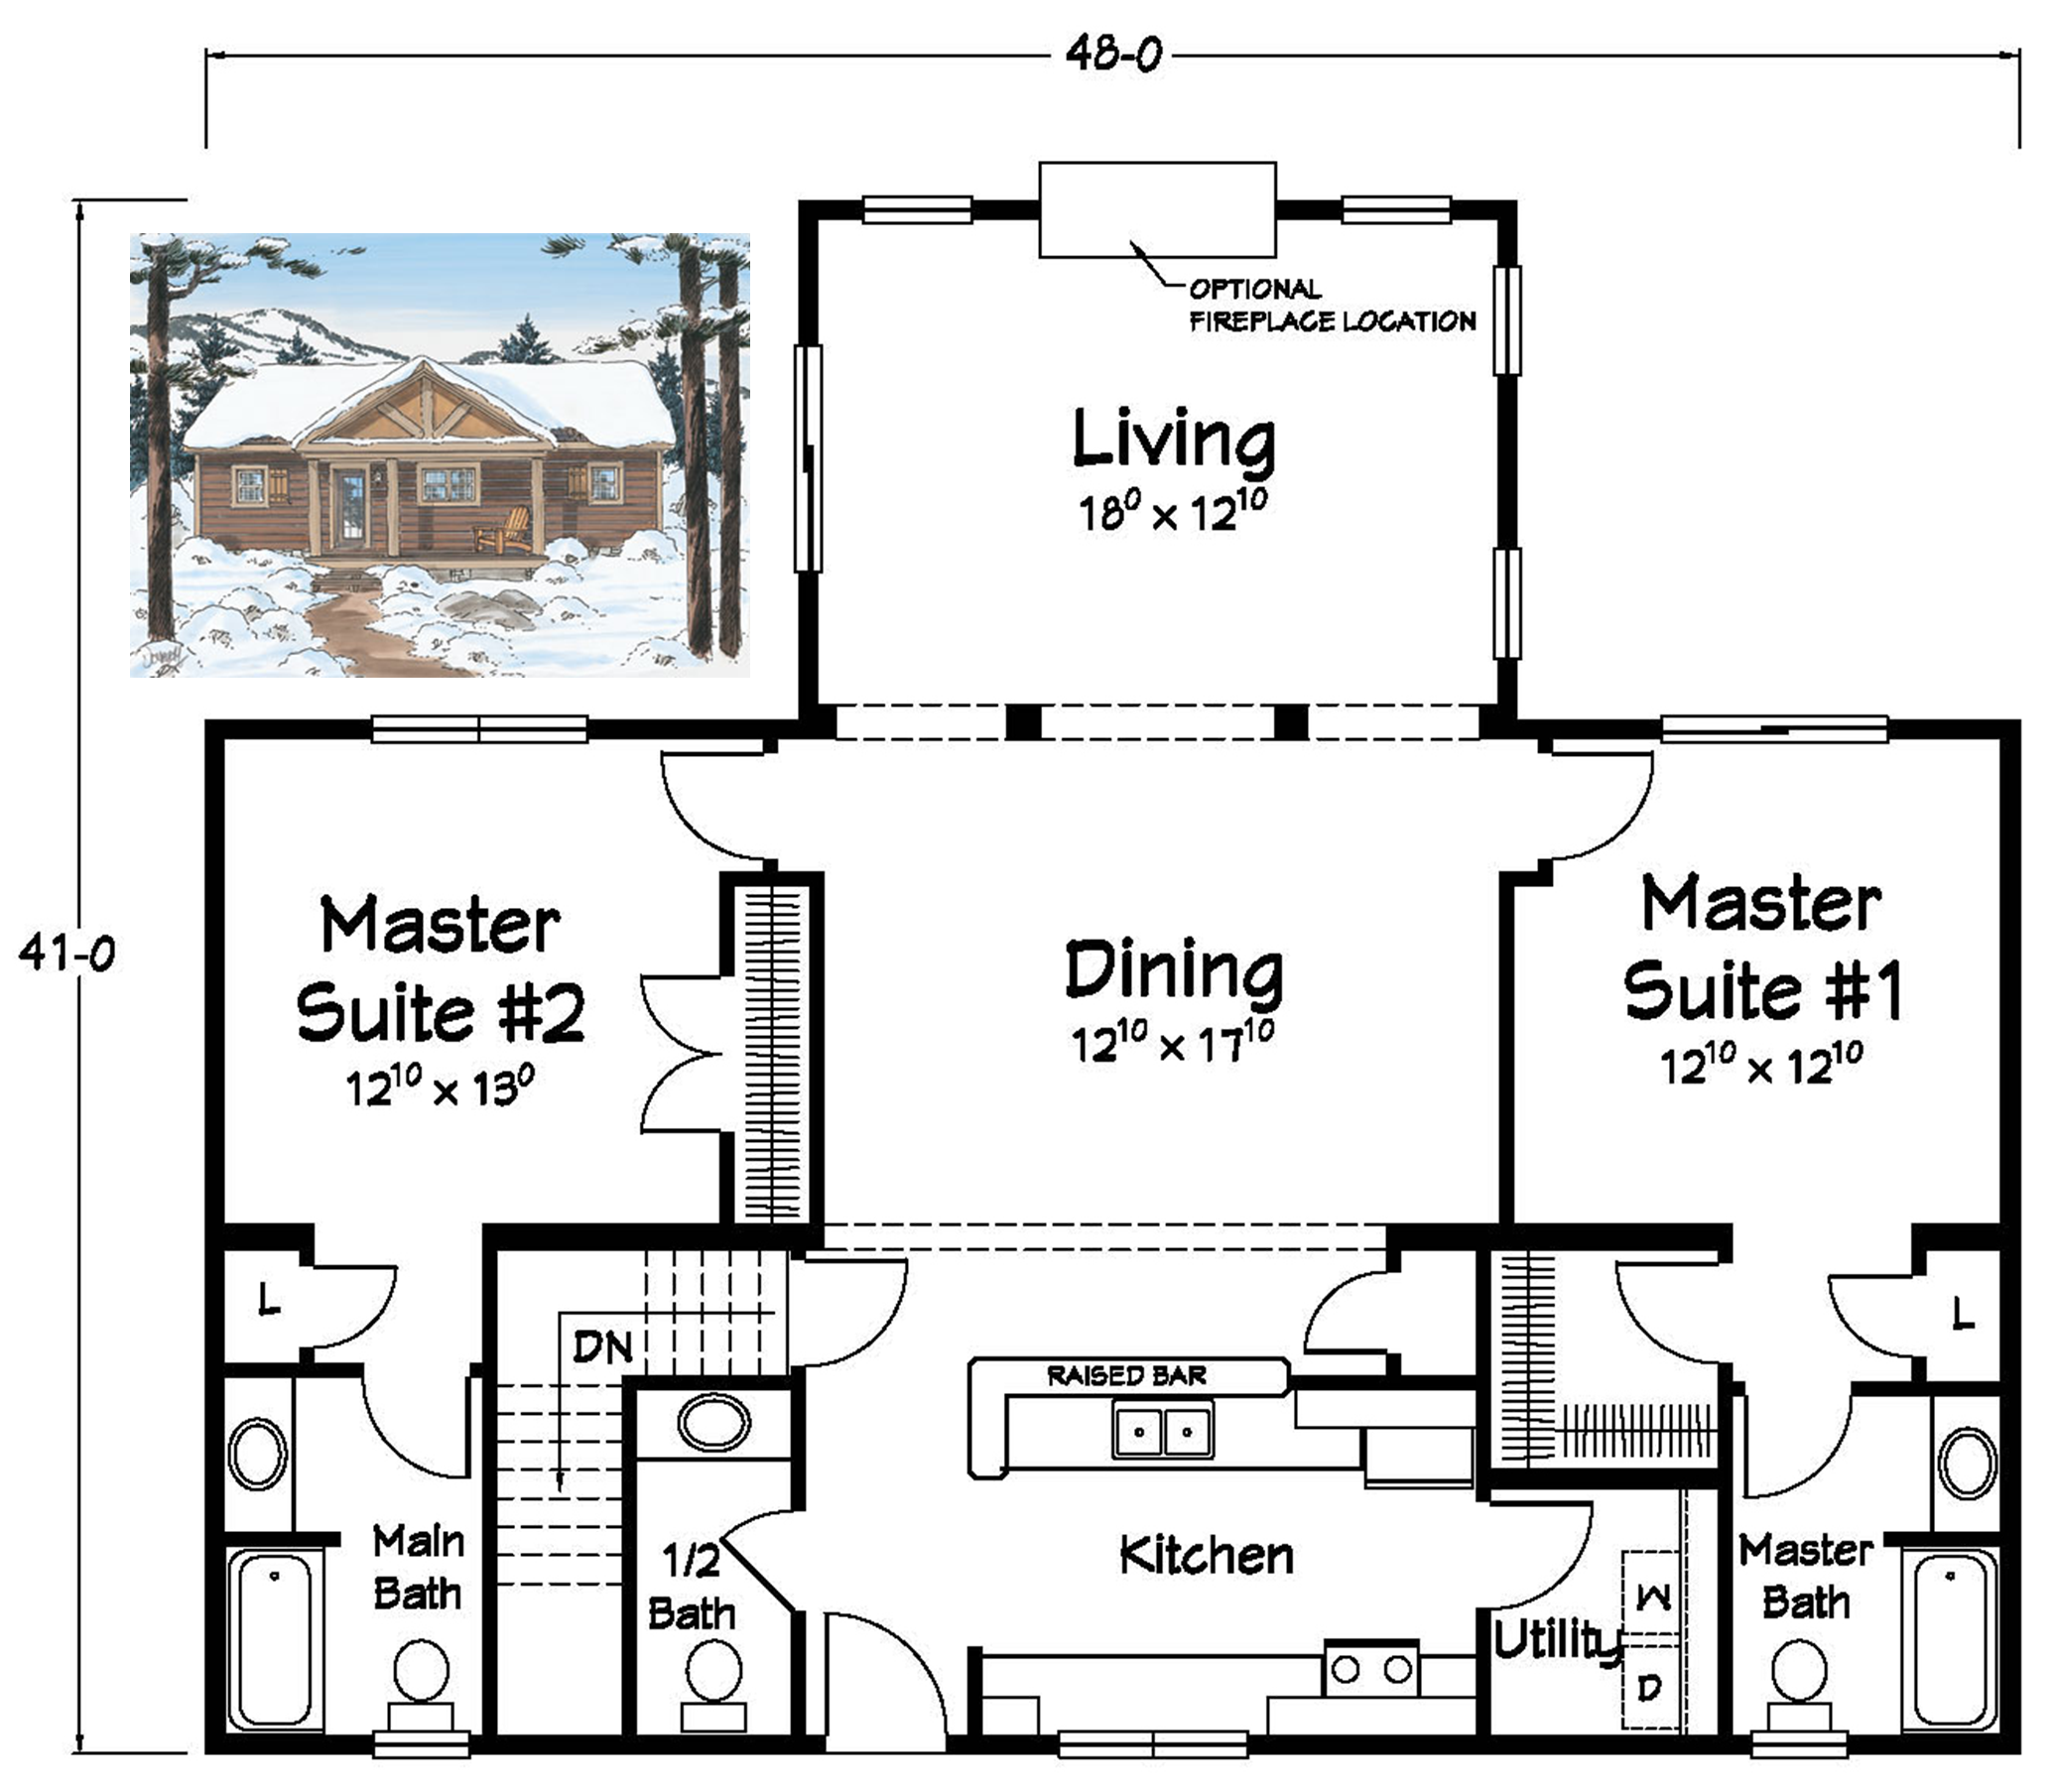 Two Master Suites